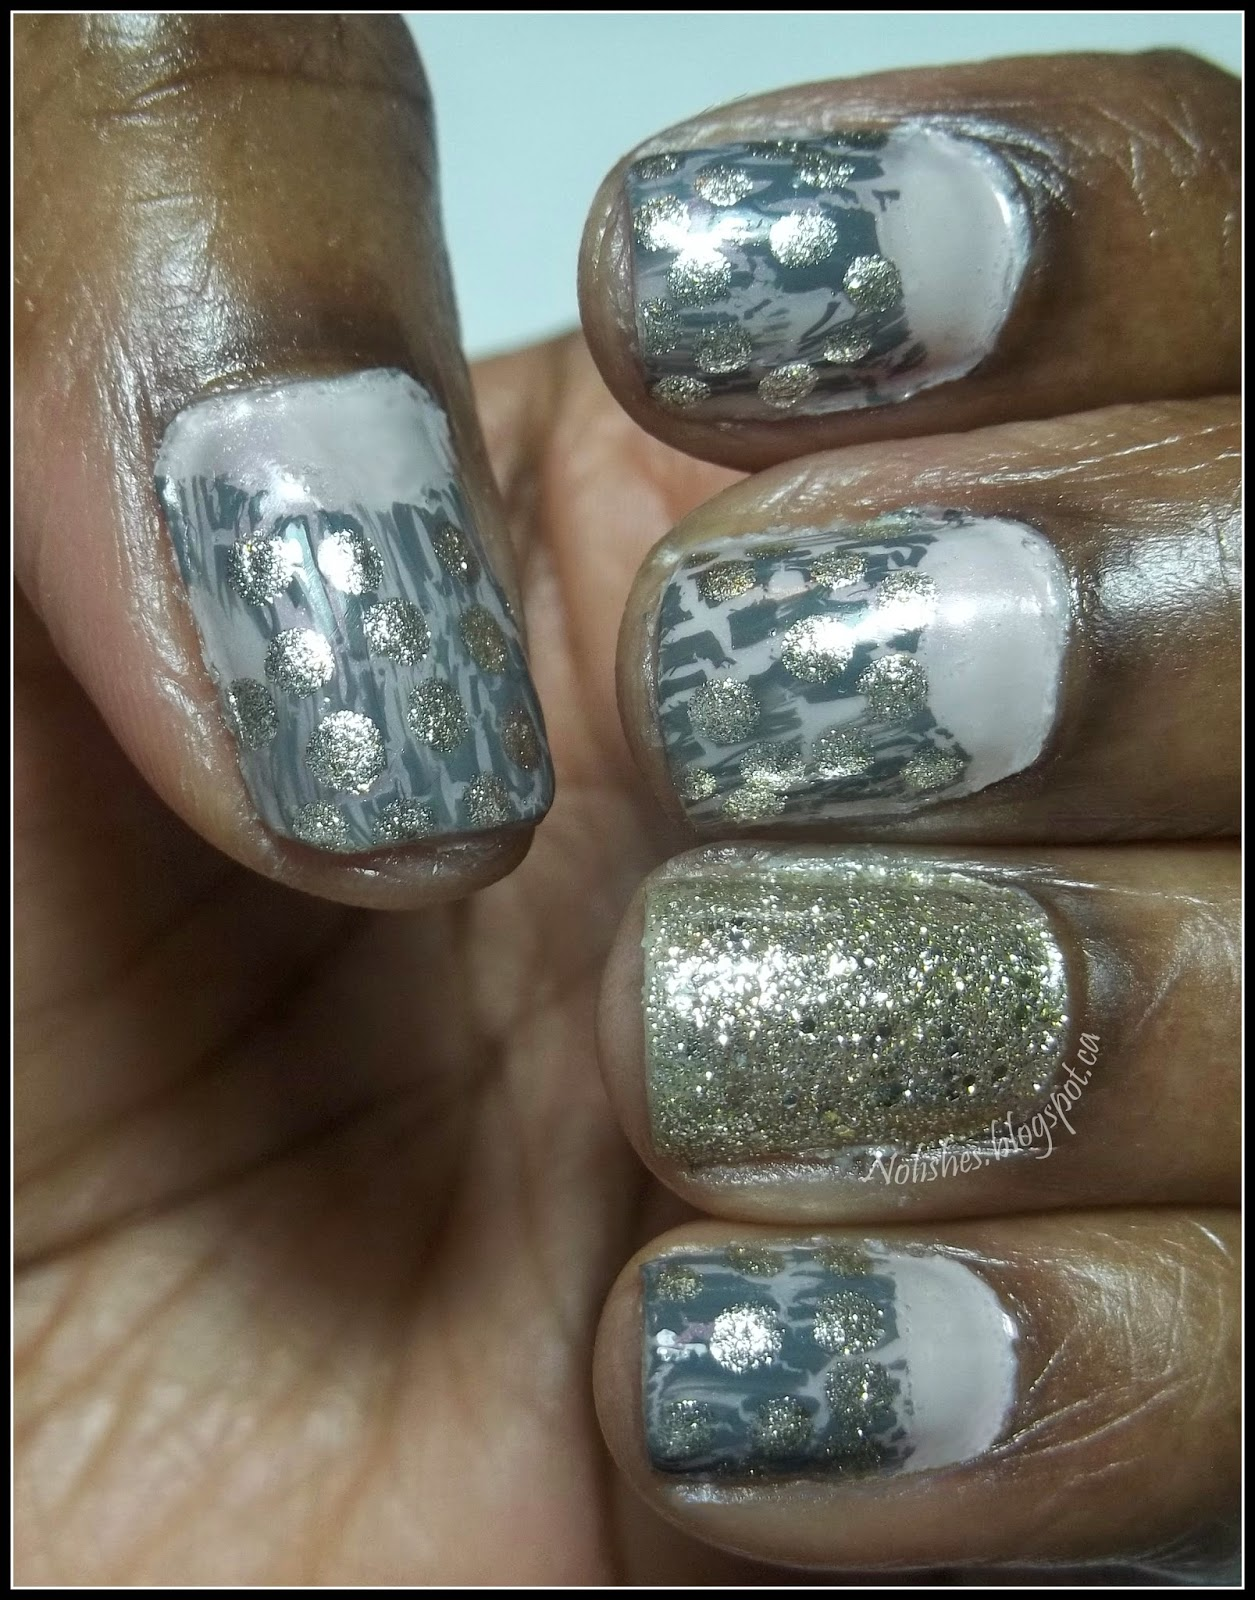 A nail stamping manicure using crackle nail polish as the background for a dotticure to give a 'studded leather' effect. All nails except the ring finger feature pink half-moons at the base, and grey crackle polish over a pink base on the upper portion. The grey crackle polish is also covered in white gold dots. The ring finger features white gold glitter over the whole nail.